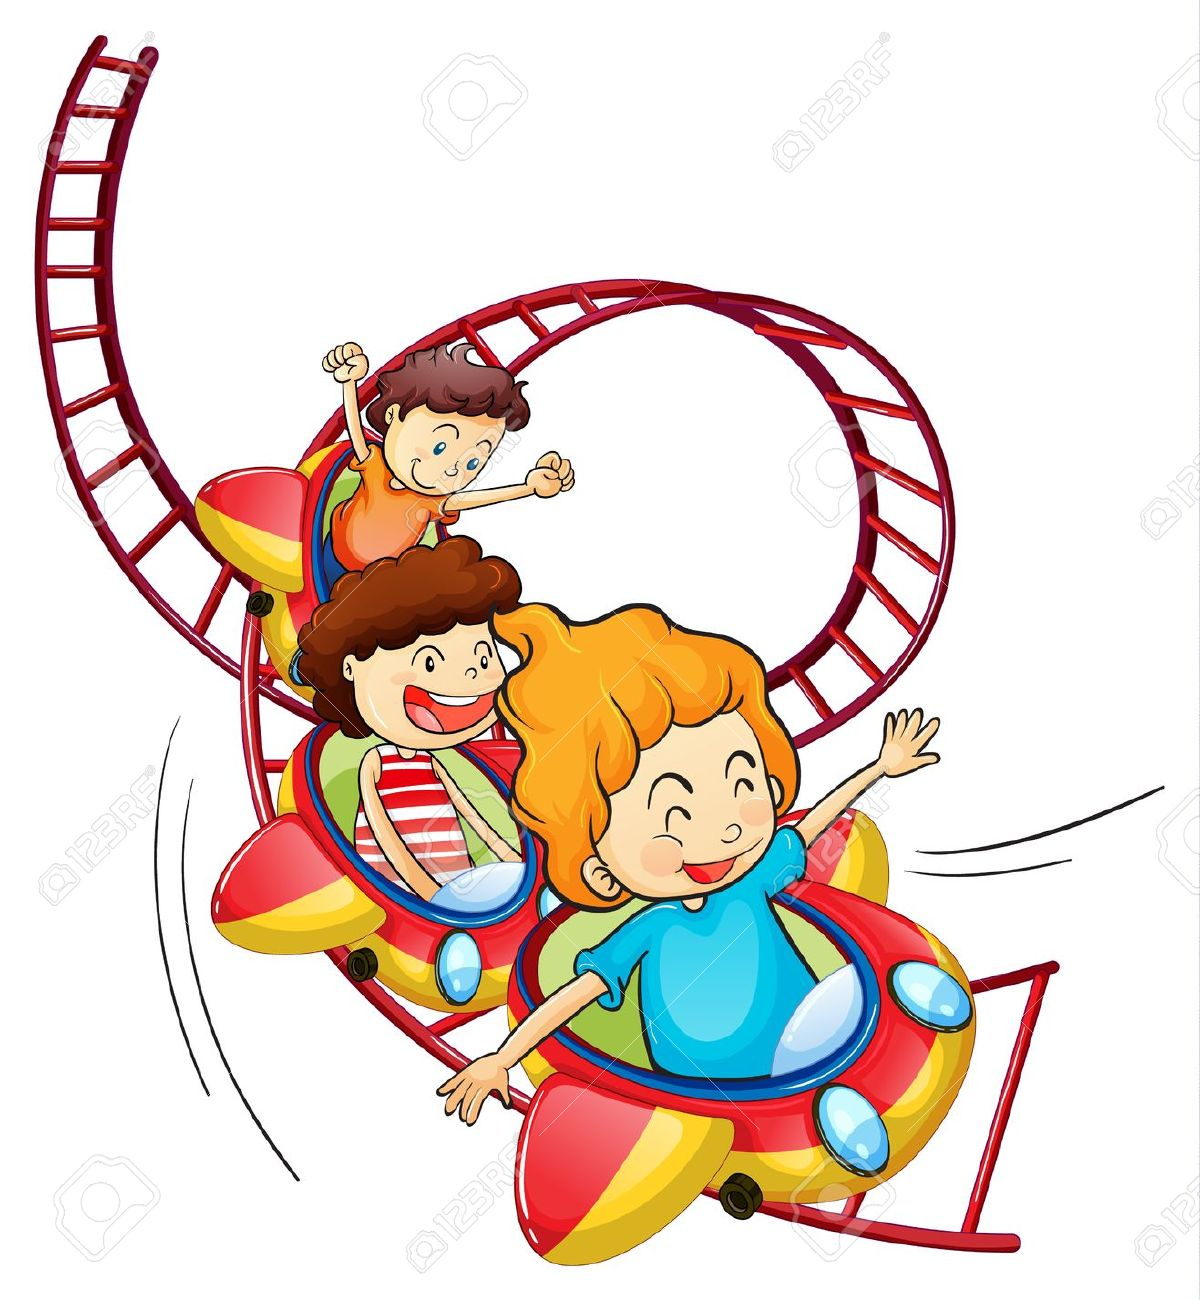 1200x1300 Clipart Free Roller Coaster